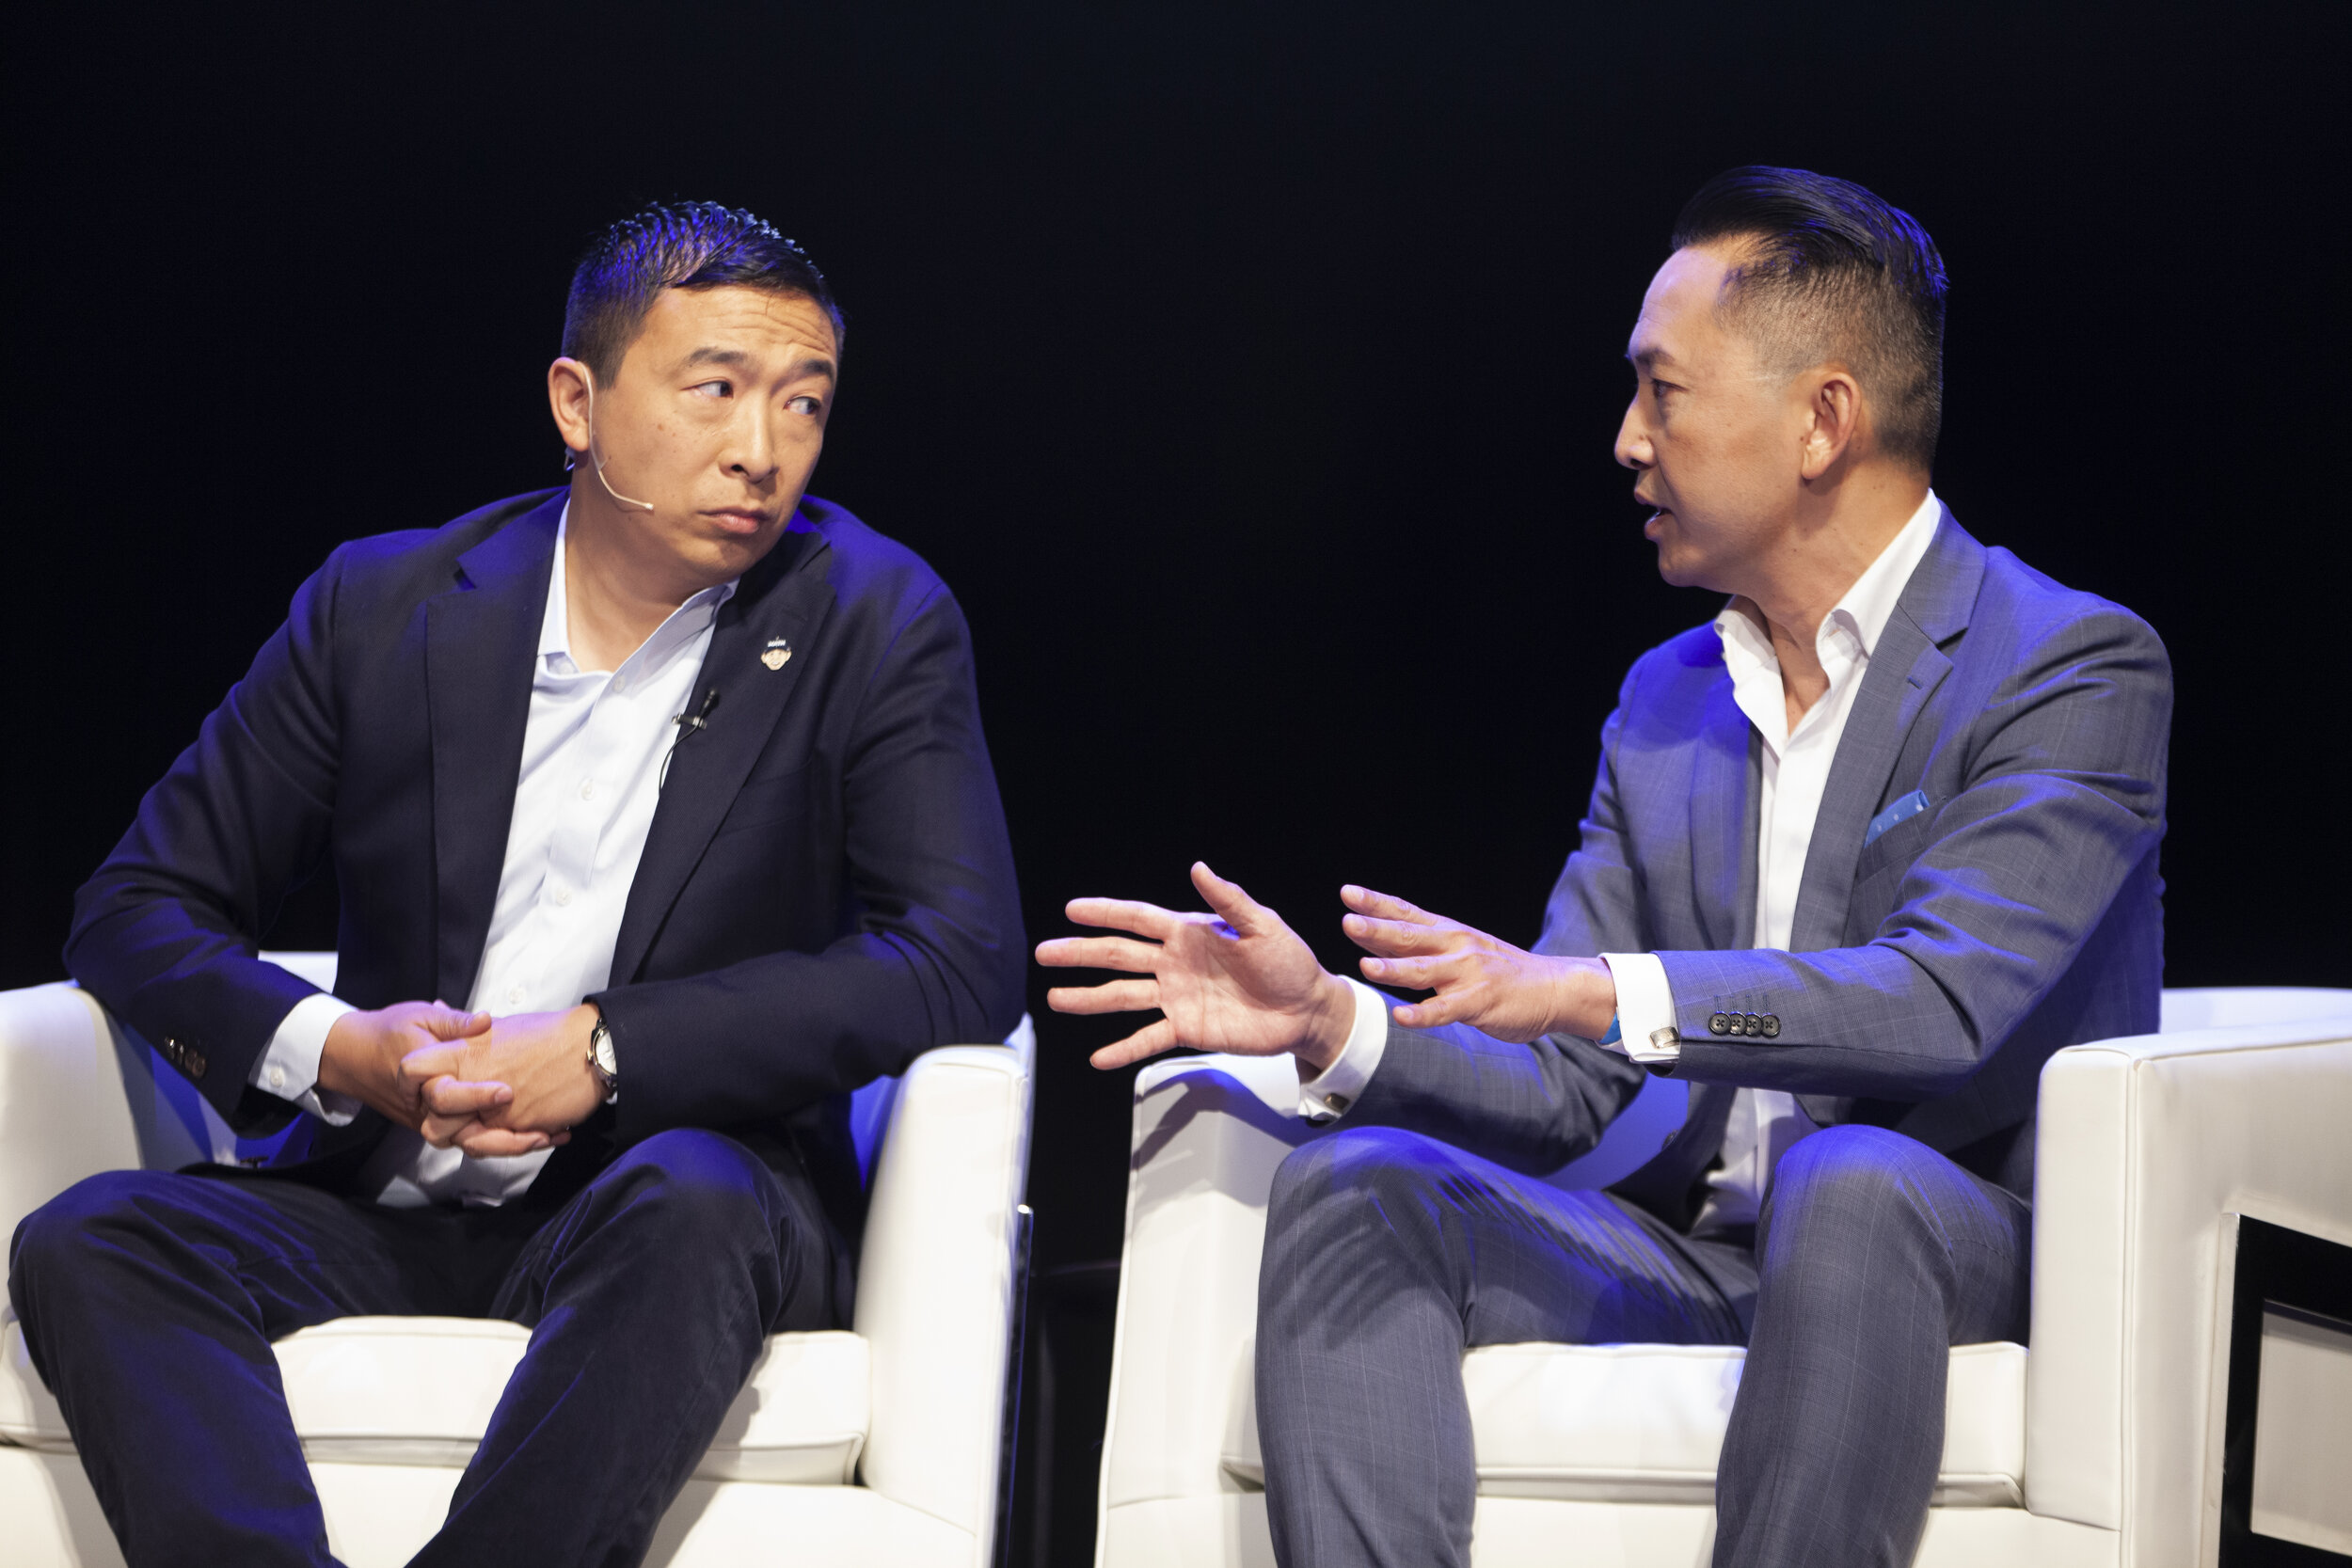 Presidential candidate Andrew Yang talks universal basic income with Pulitzer price-winning author Viet Thanh Nguyen on stage at the AAPI Democratic Presidential Forum.